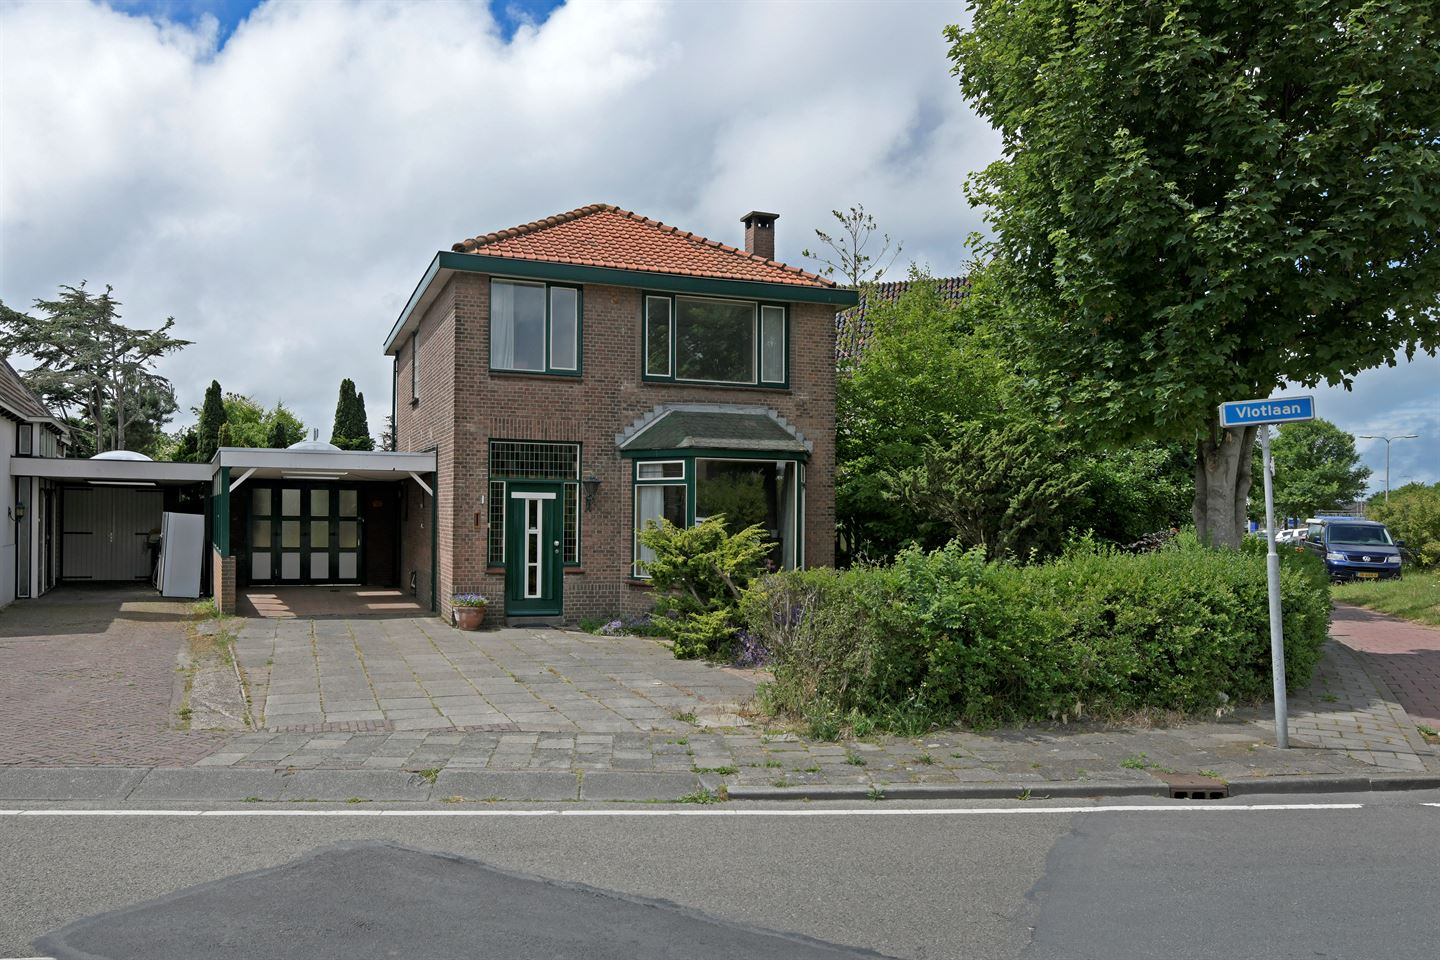 View photo 1 of Vlotlaan 1